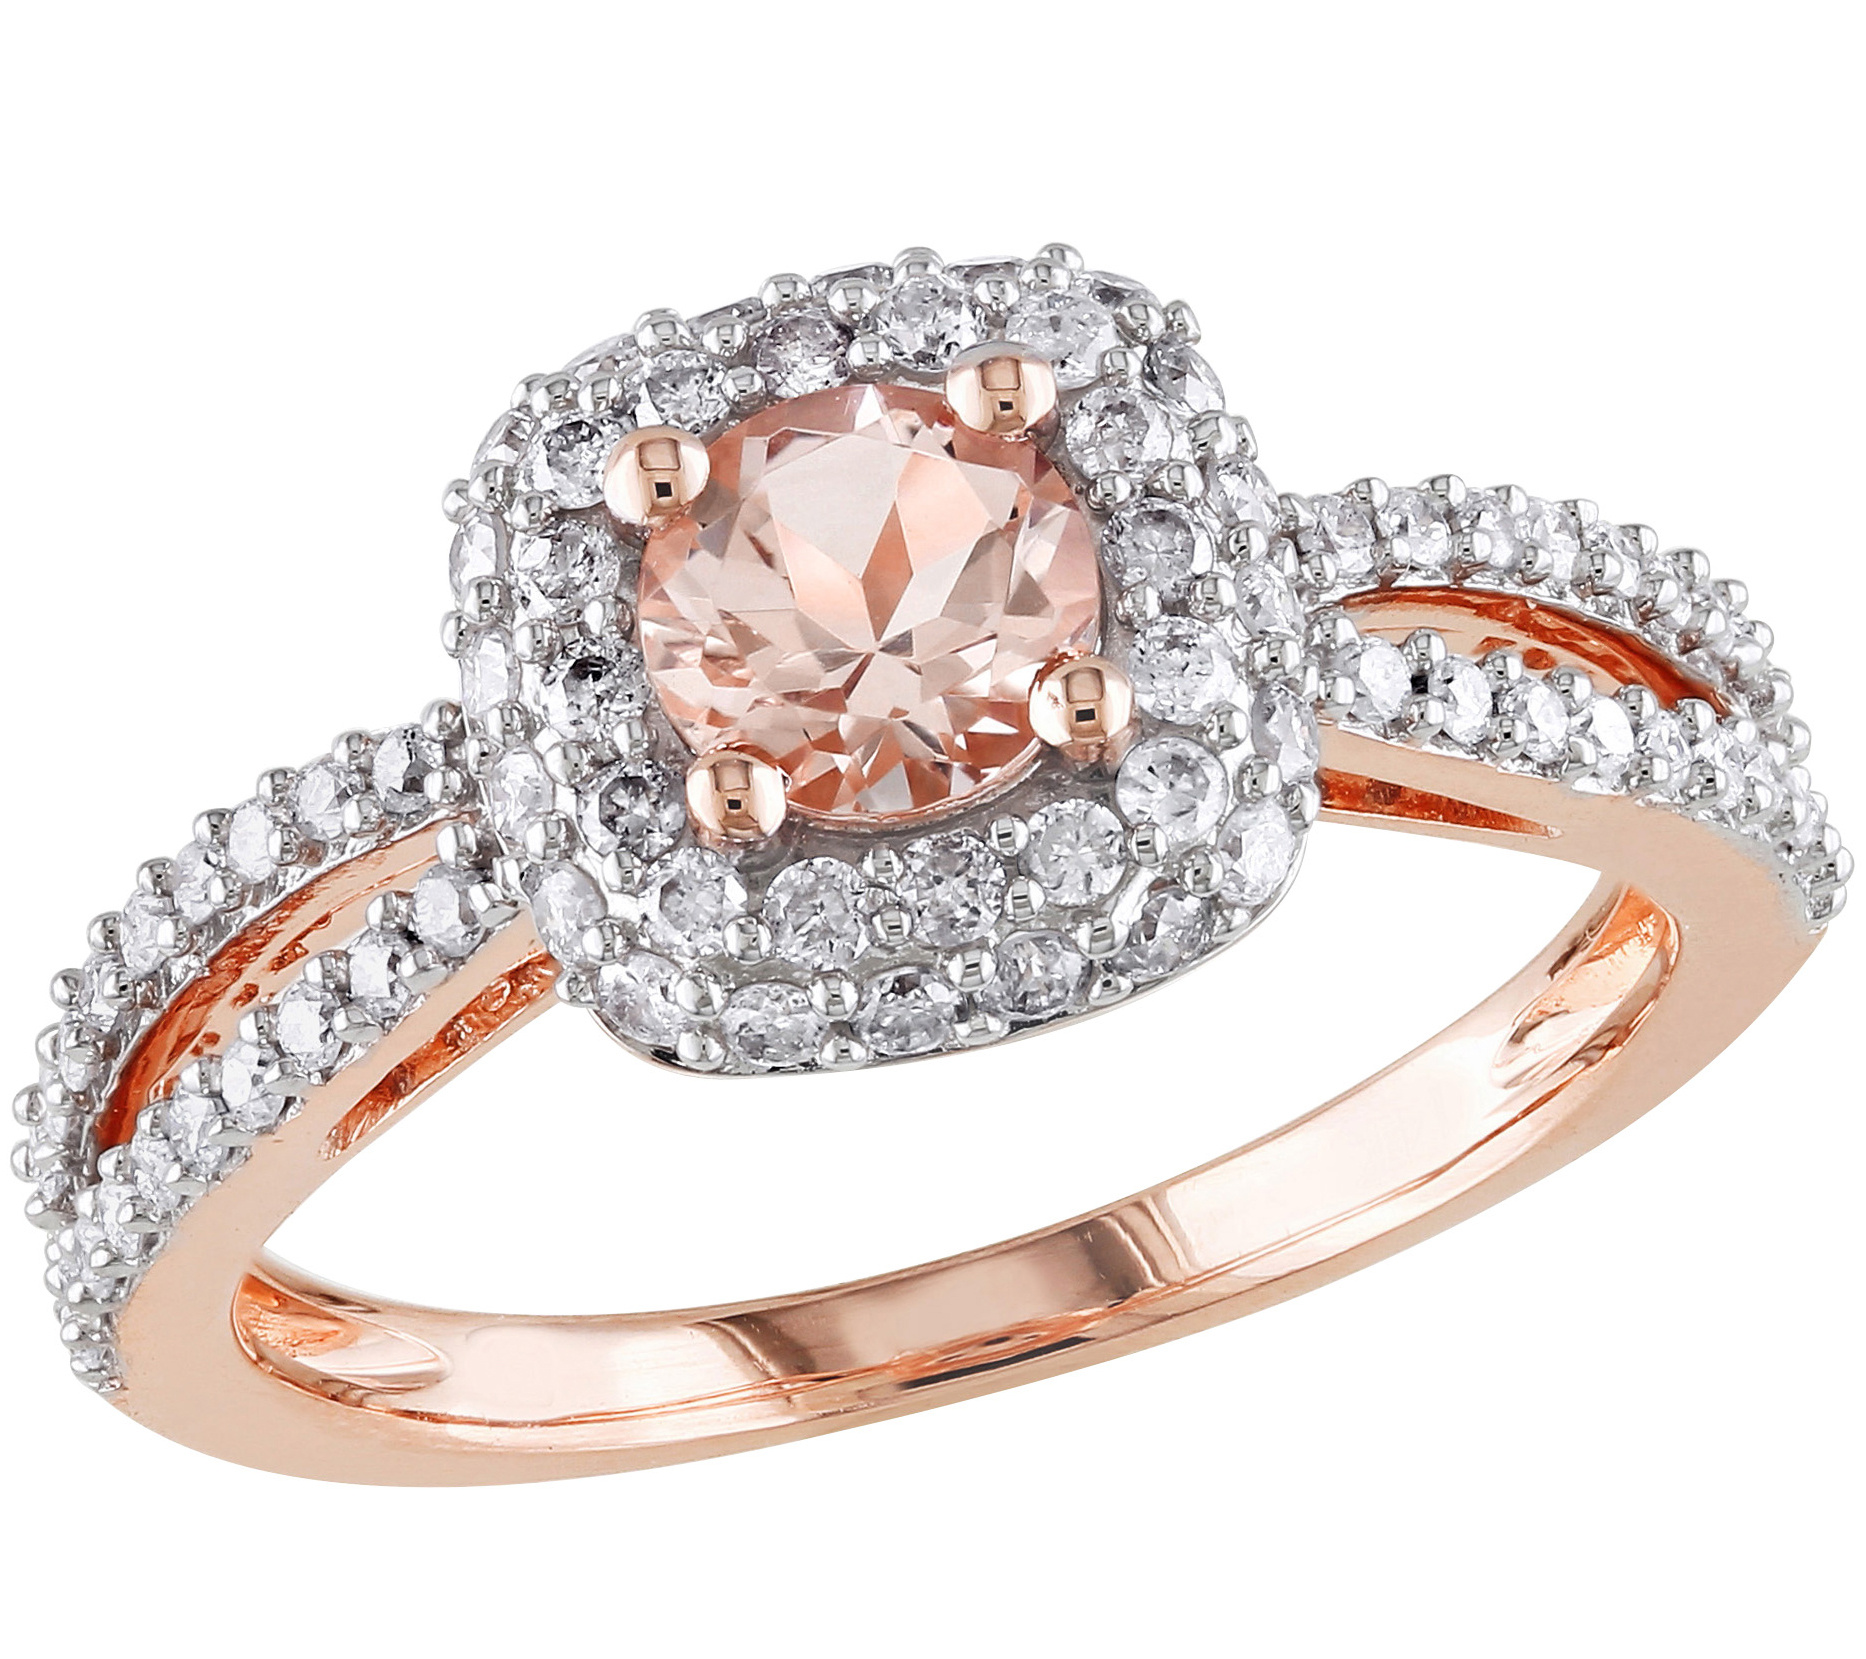 Morganite & Diamond Ring 14K Rose Gold — QVC